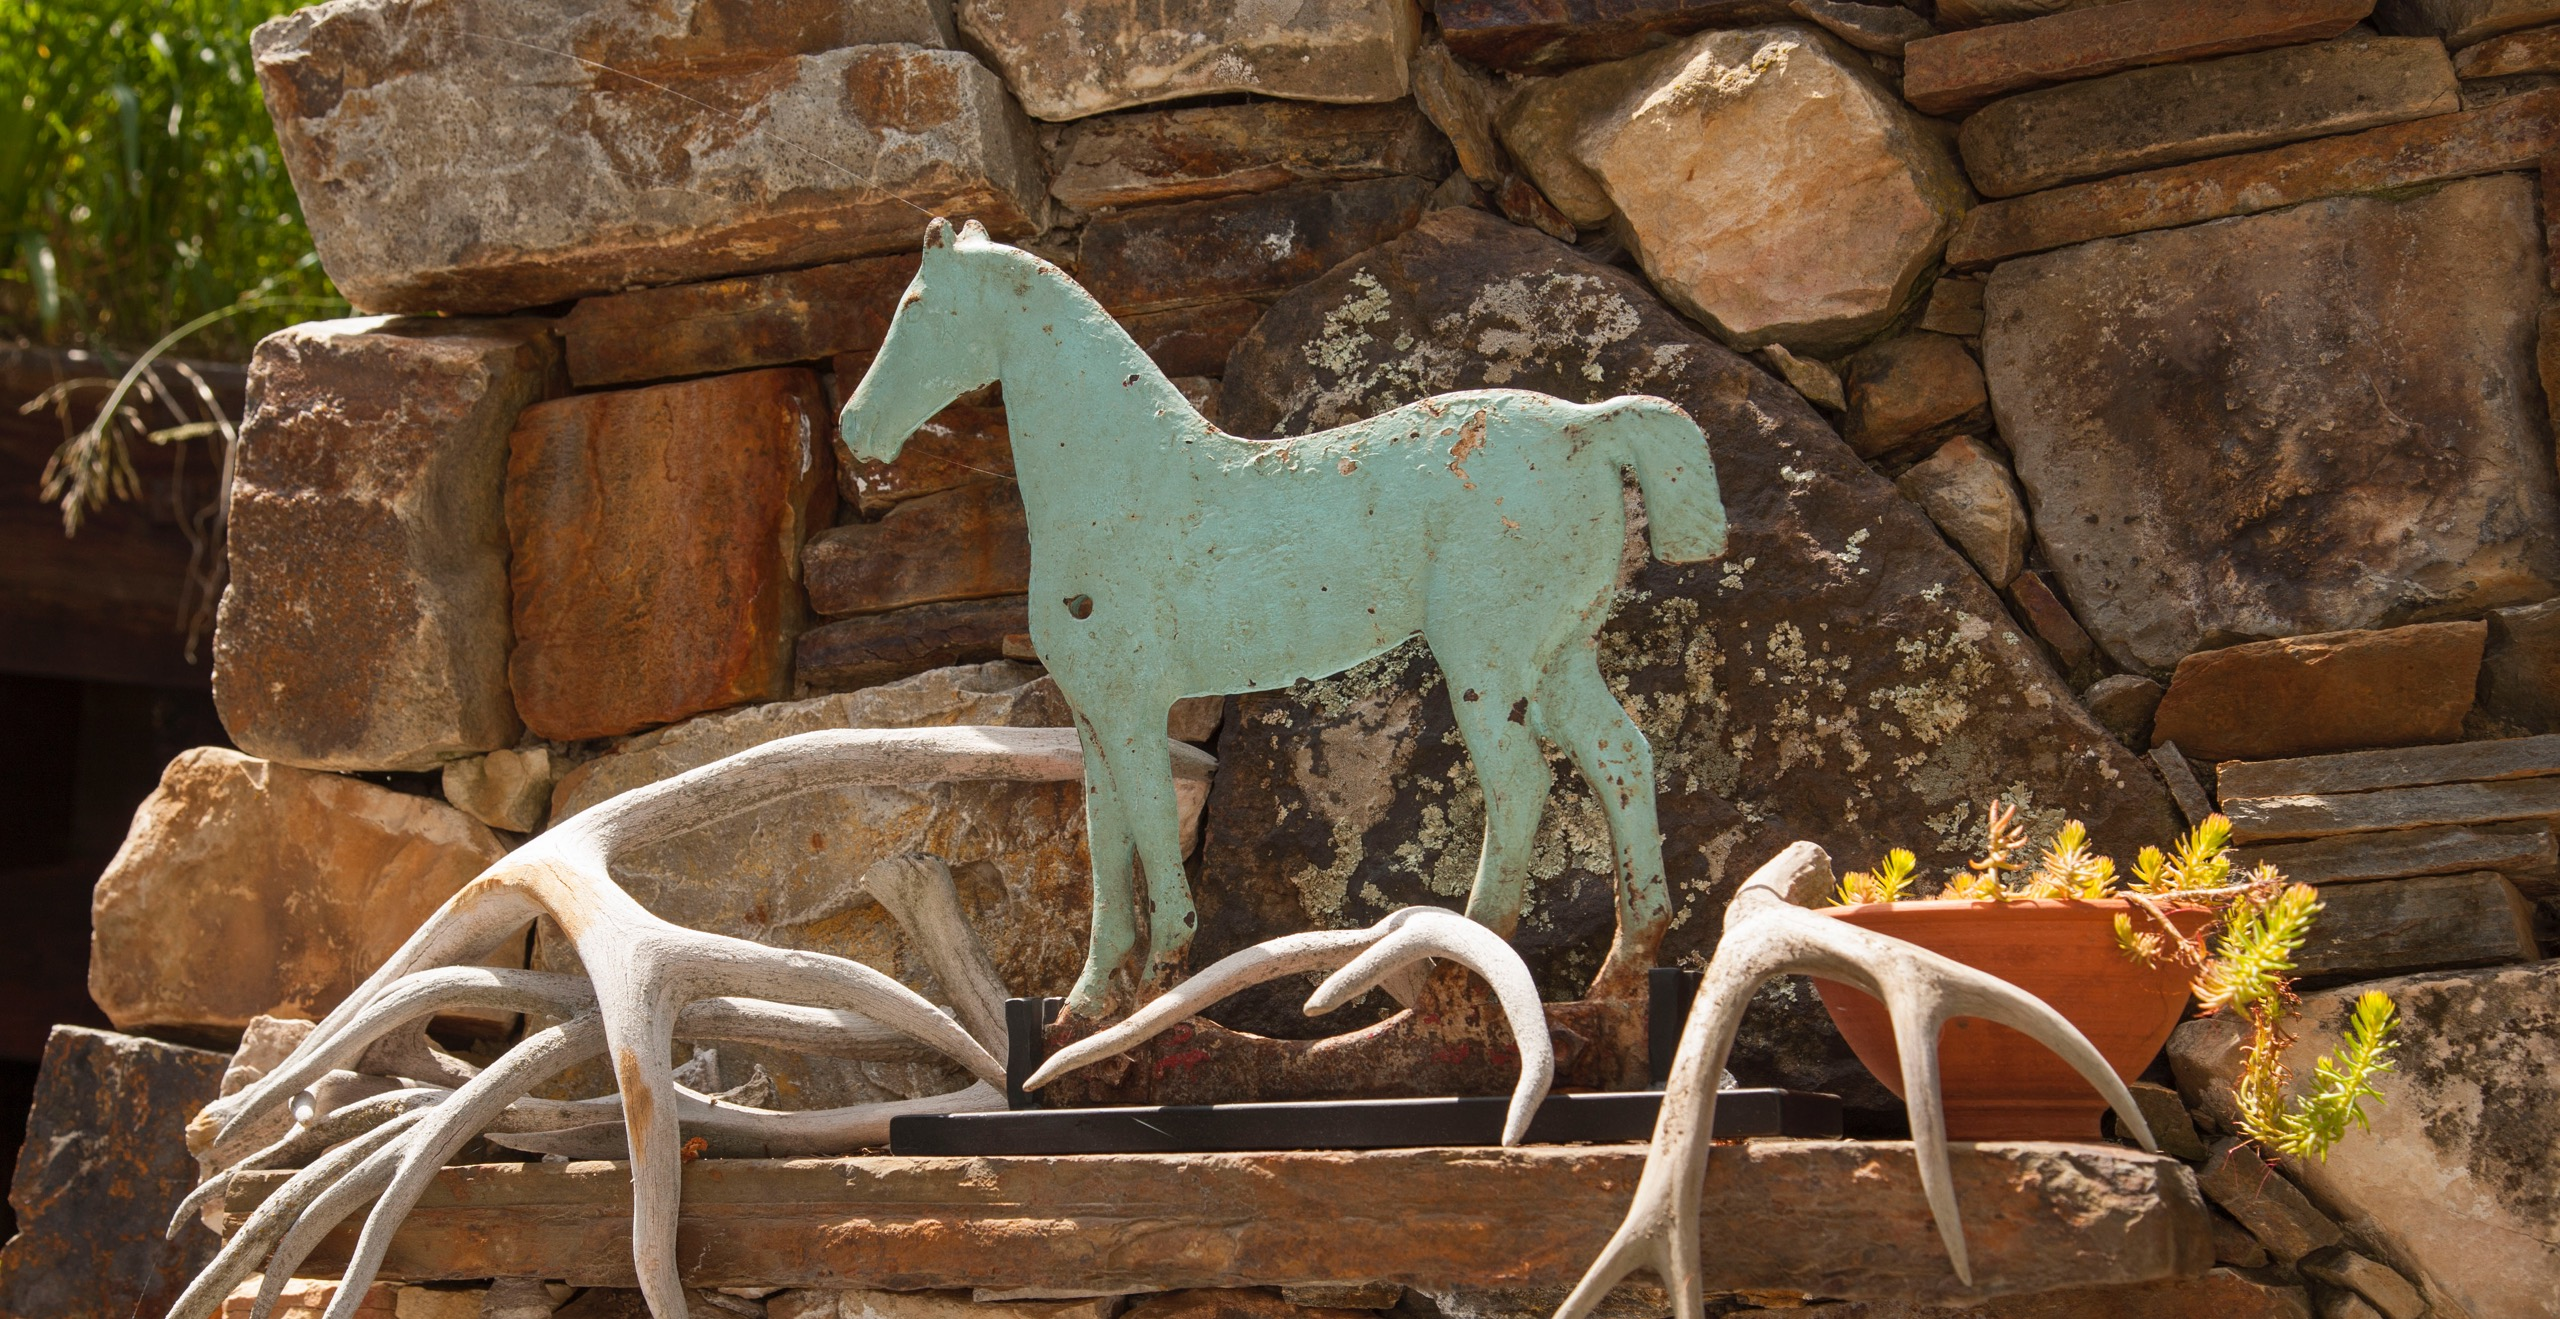 Buffy Birrittella's rustic Utah getaway is home to all kinds of horses—the one she rides and the ones she collects. Here, a blue horse windmill weight surrounded by antlers